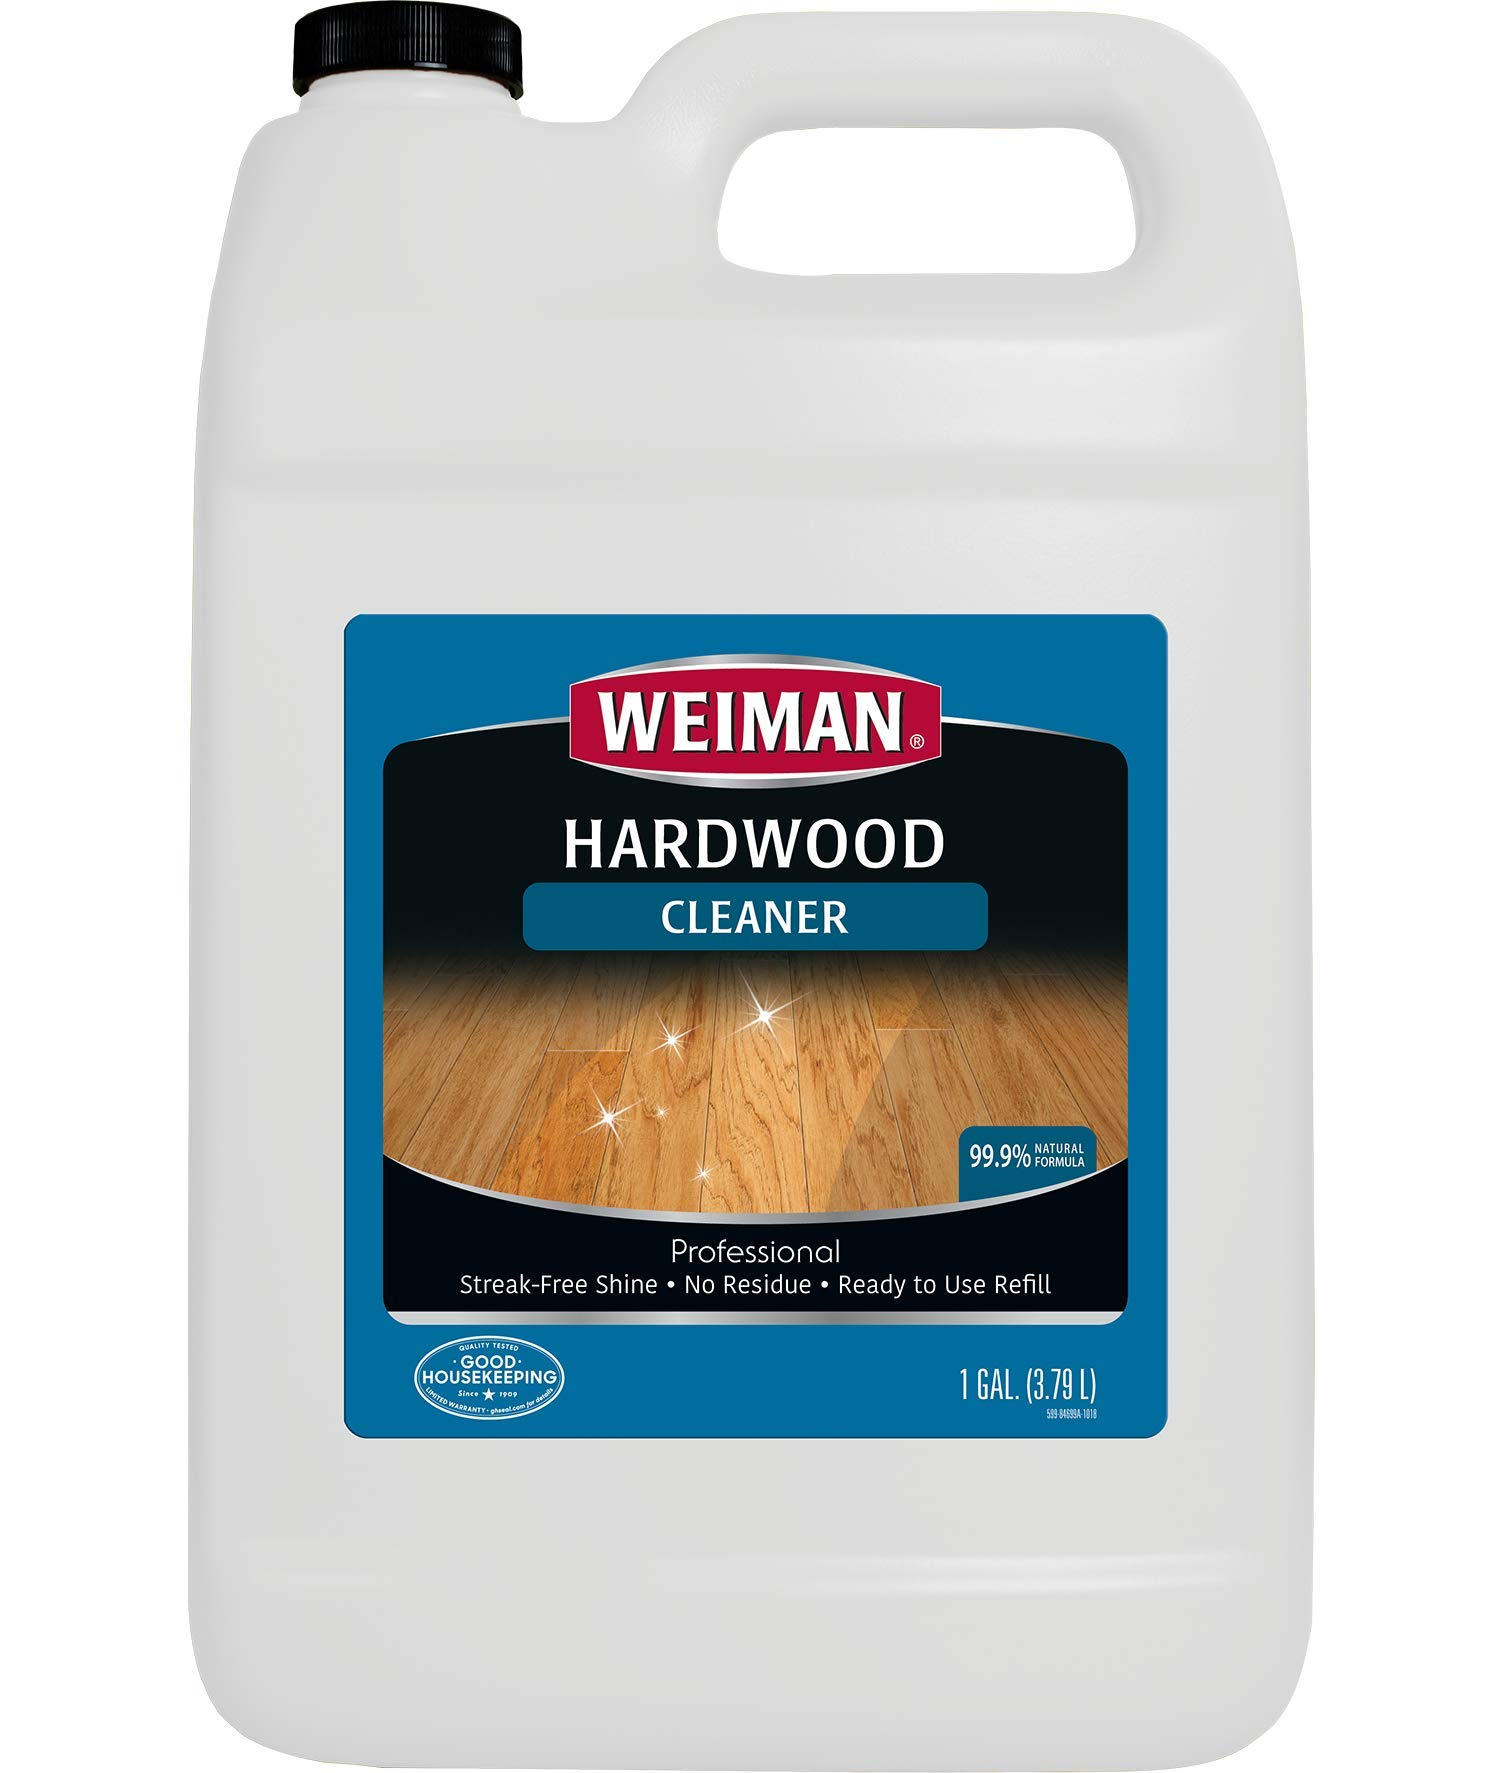 Weiman Hardwood Floor Cleaner 128 FL. OZ. Refill - Professional Strength by Weiman (Image #1)